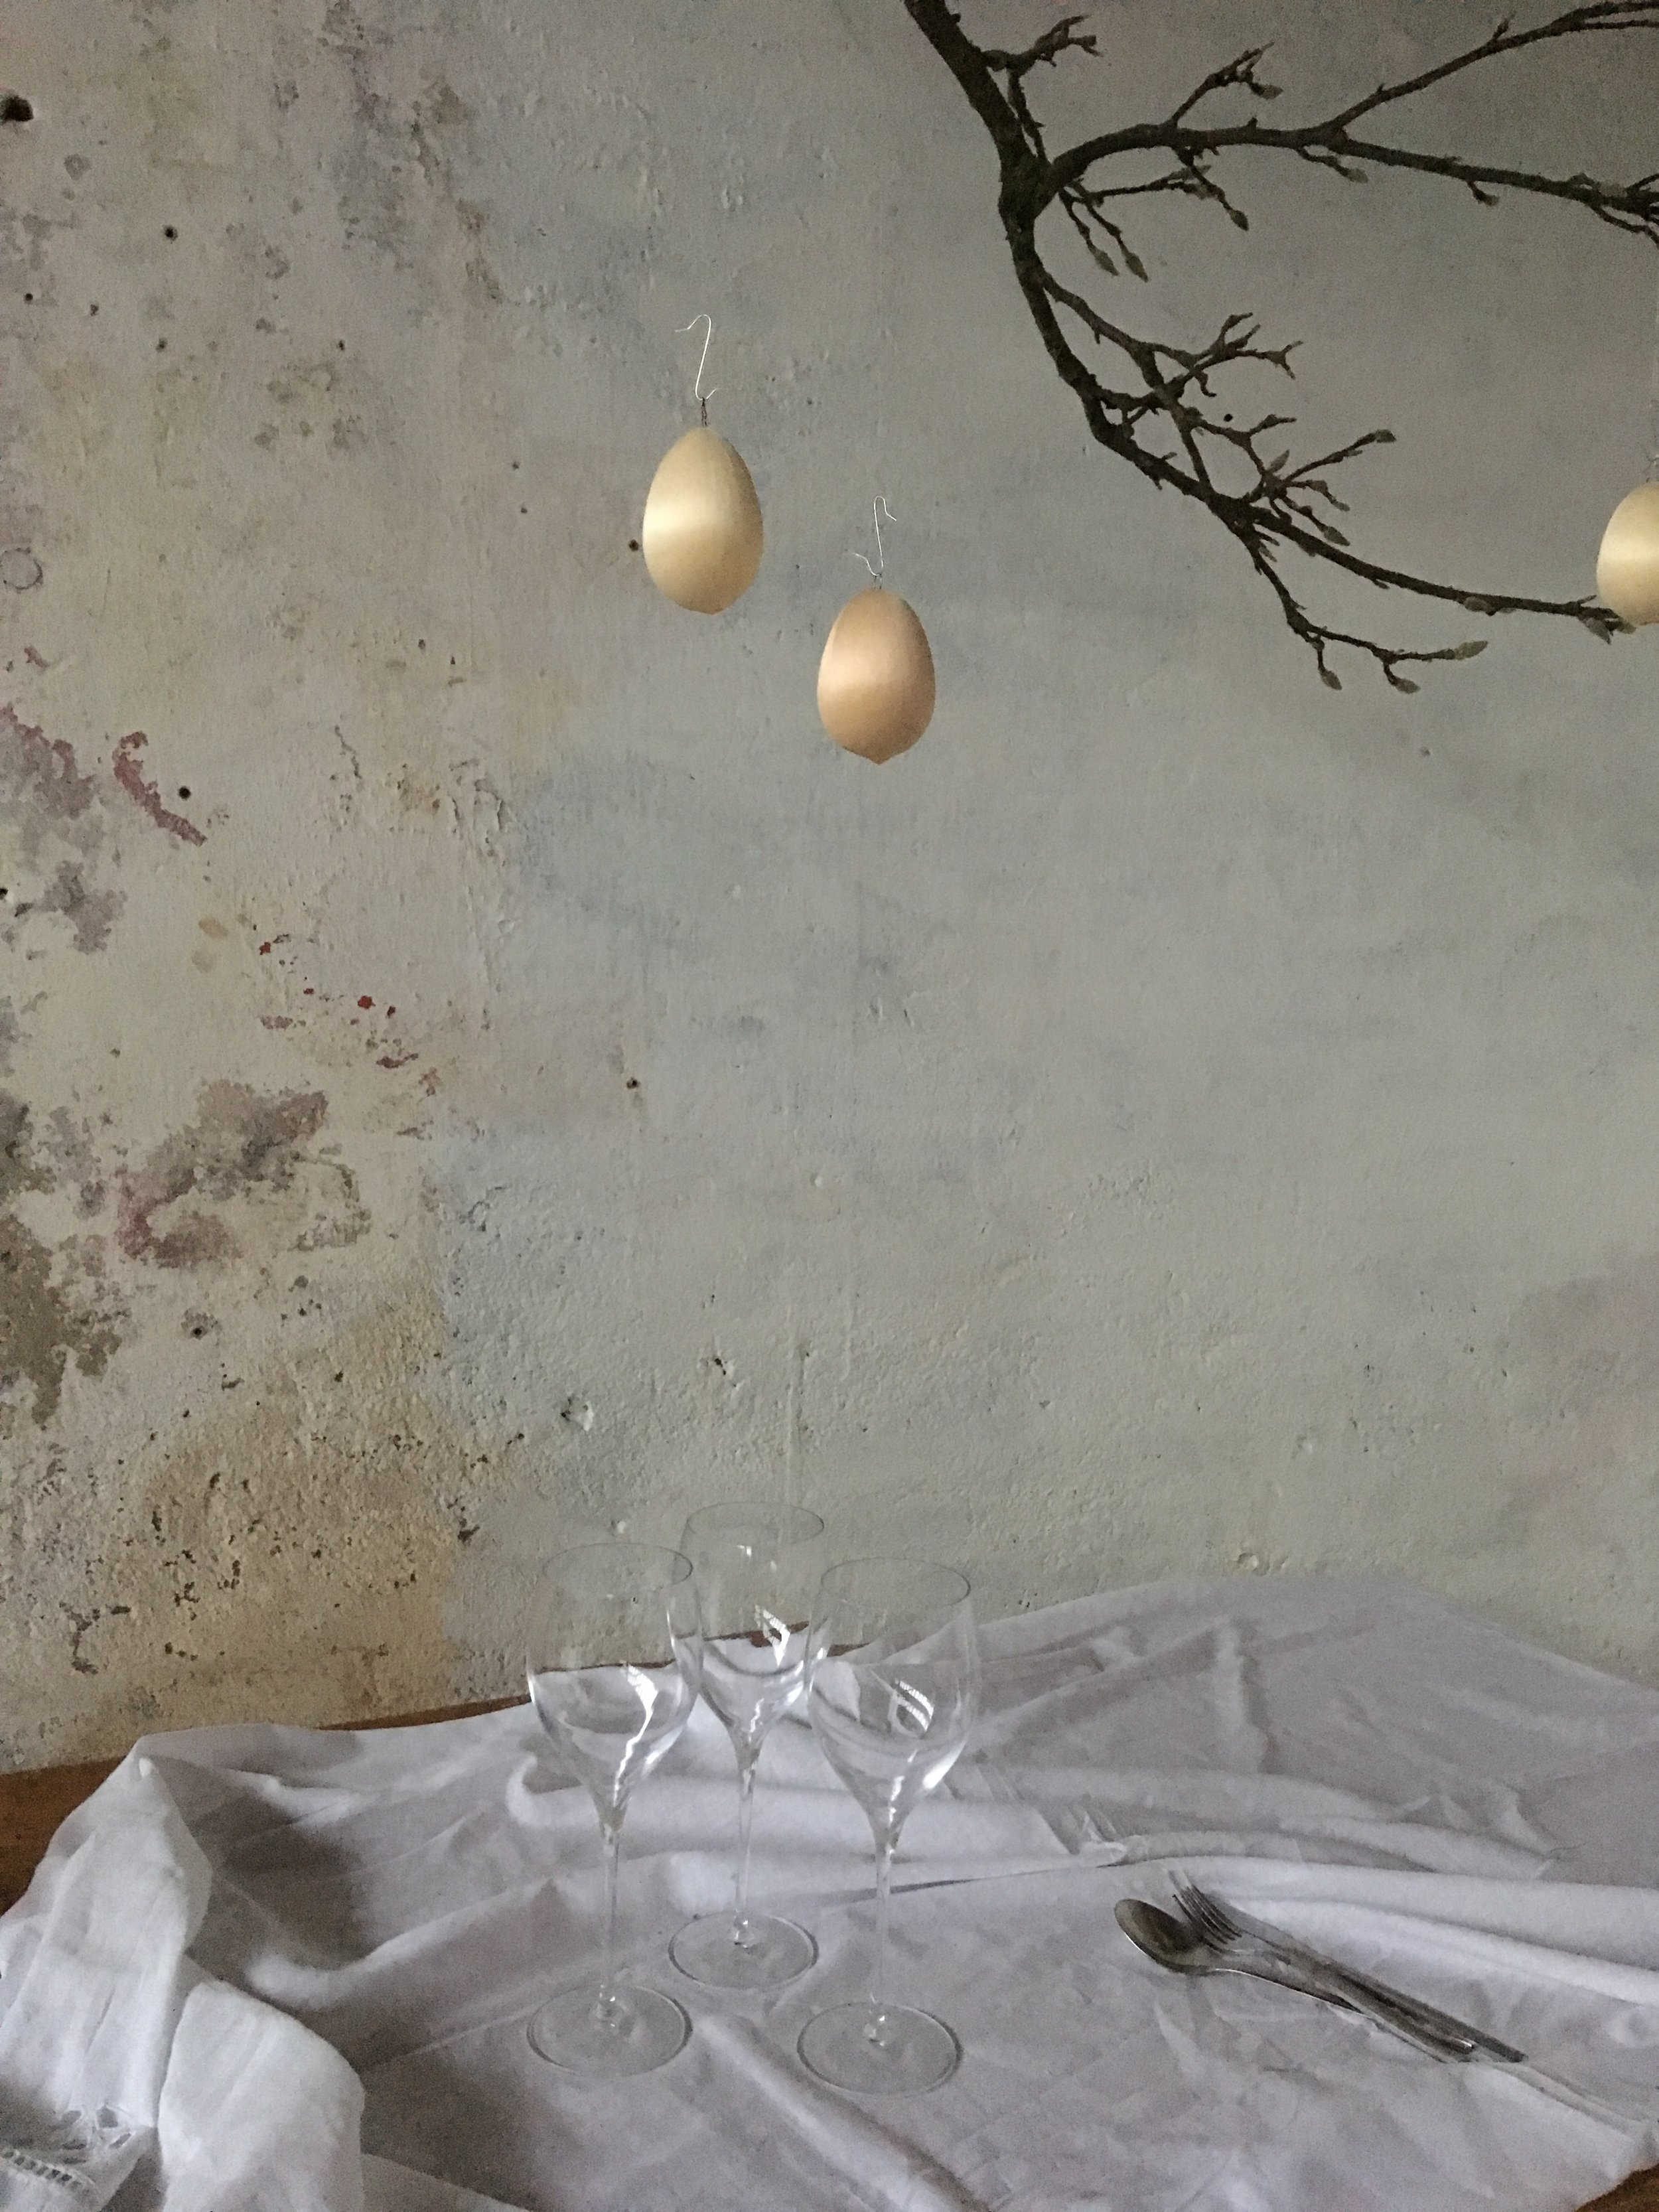 SATIN shapes - the small Eggs in ivory